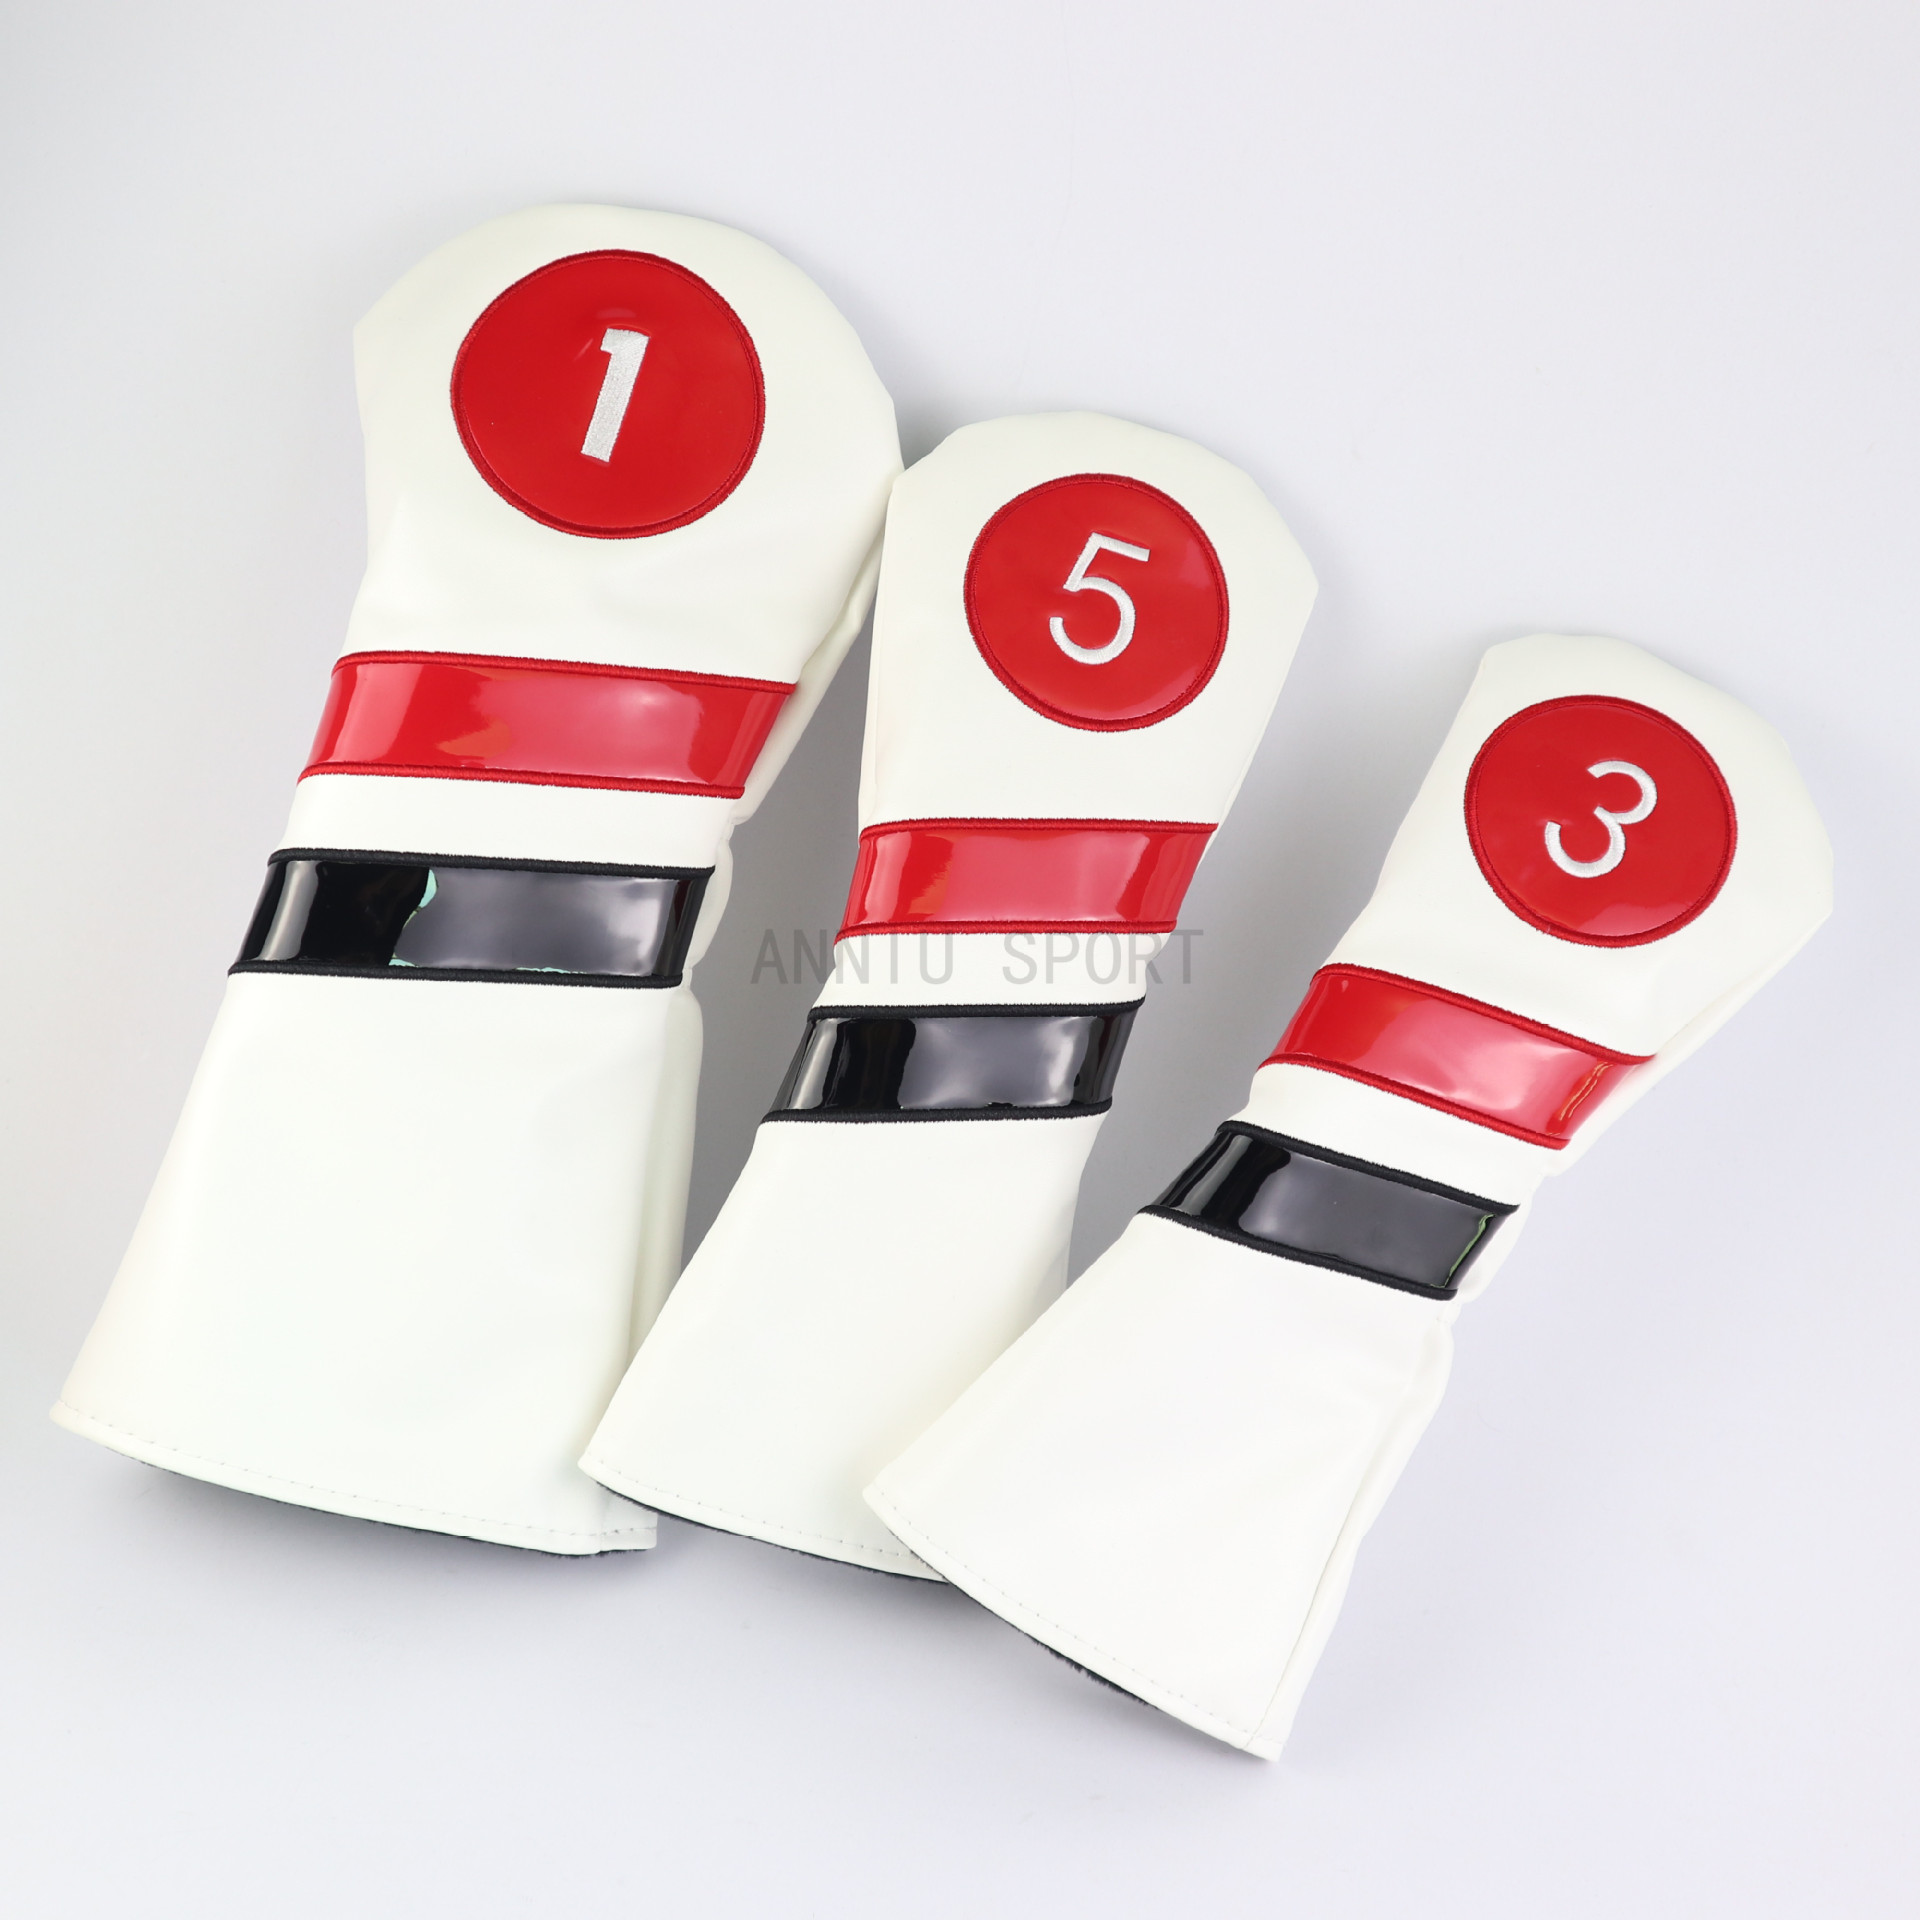 Manufacturers Direct Selling Cross Border Electricity Supplier Golf Club Sleeve Wooden Pole Sets Sleeve Head Covers One, Three,